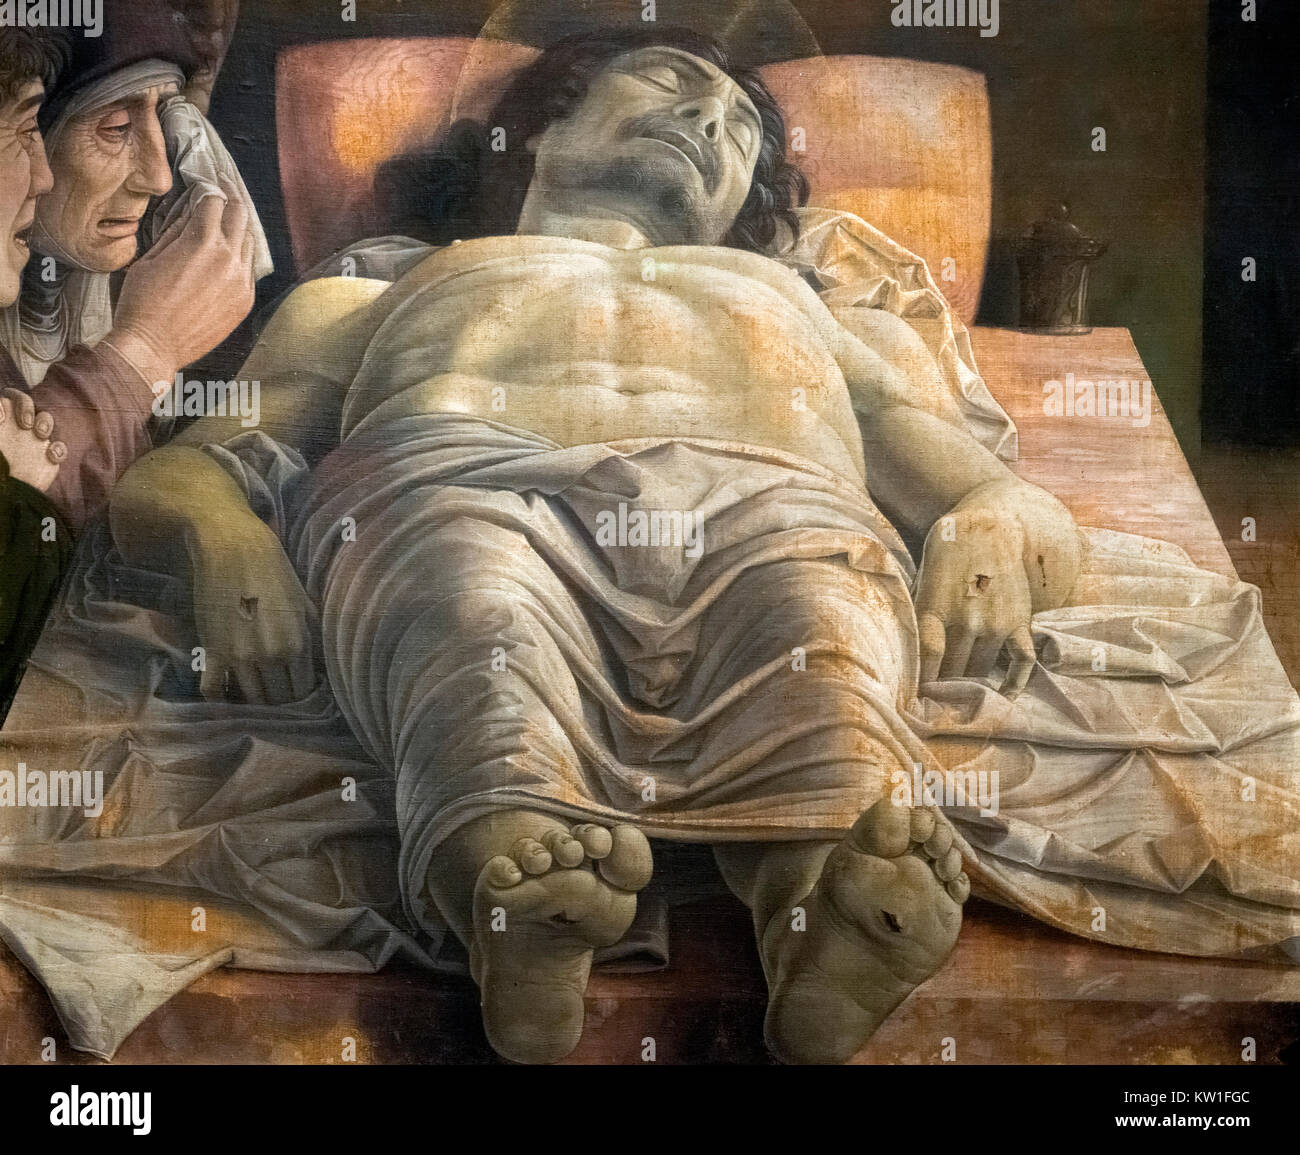 The Lamentation over the Dead Christ by Andrea Mantegna (1431-1506), tempera on canvas, c.1483 - Stock Image